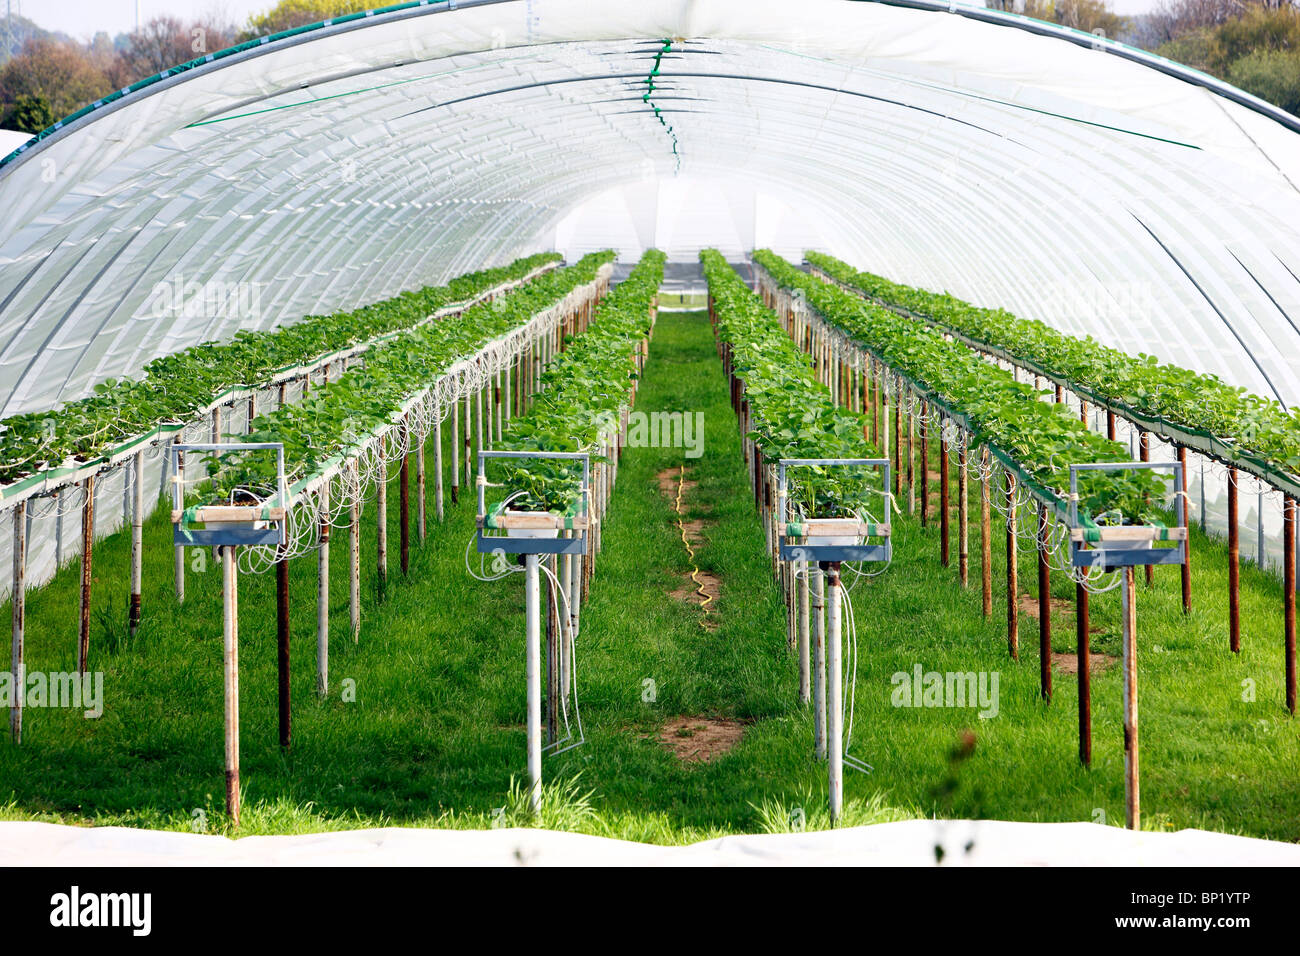 Greenhouse, for growing plants. - Stock Image